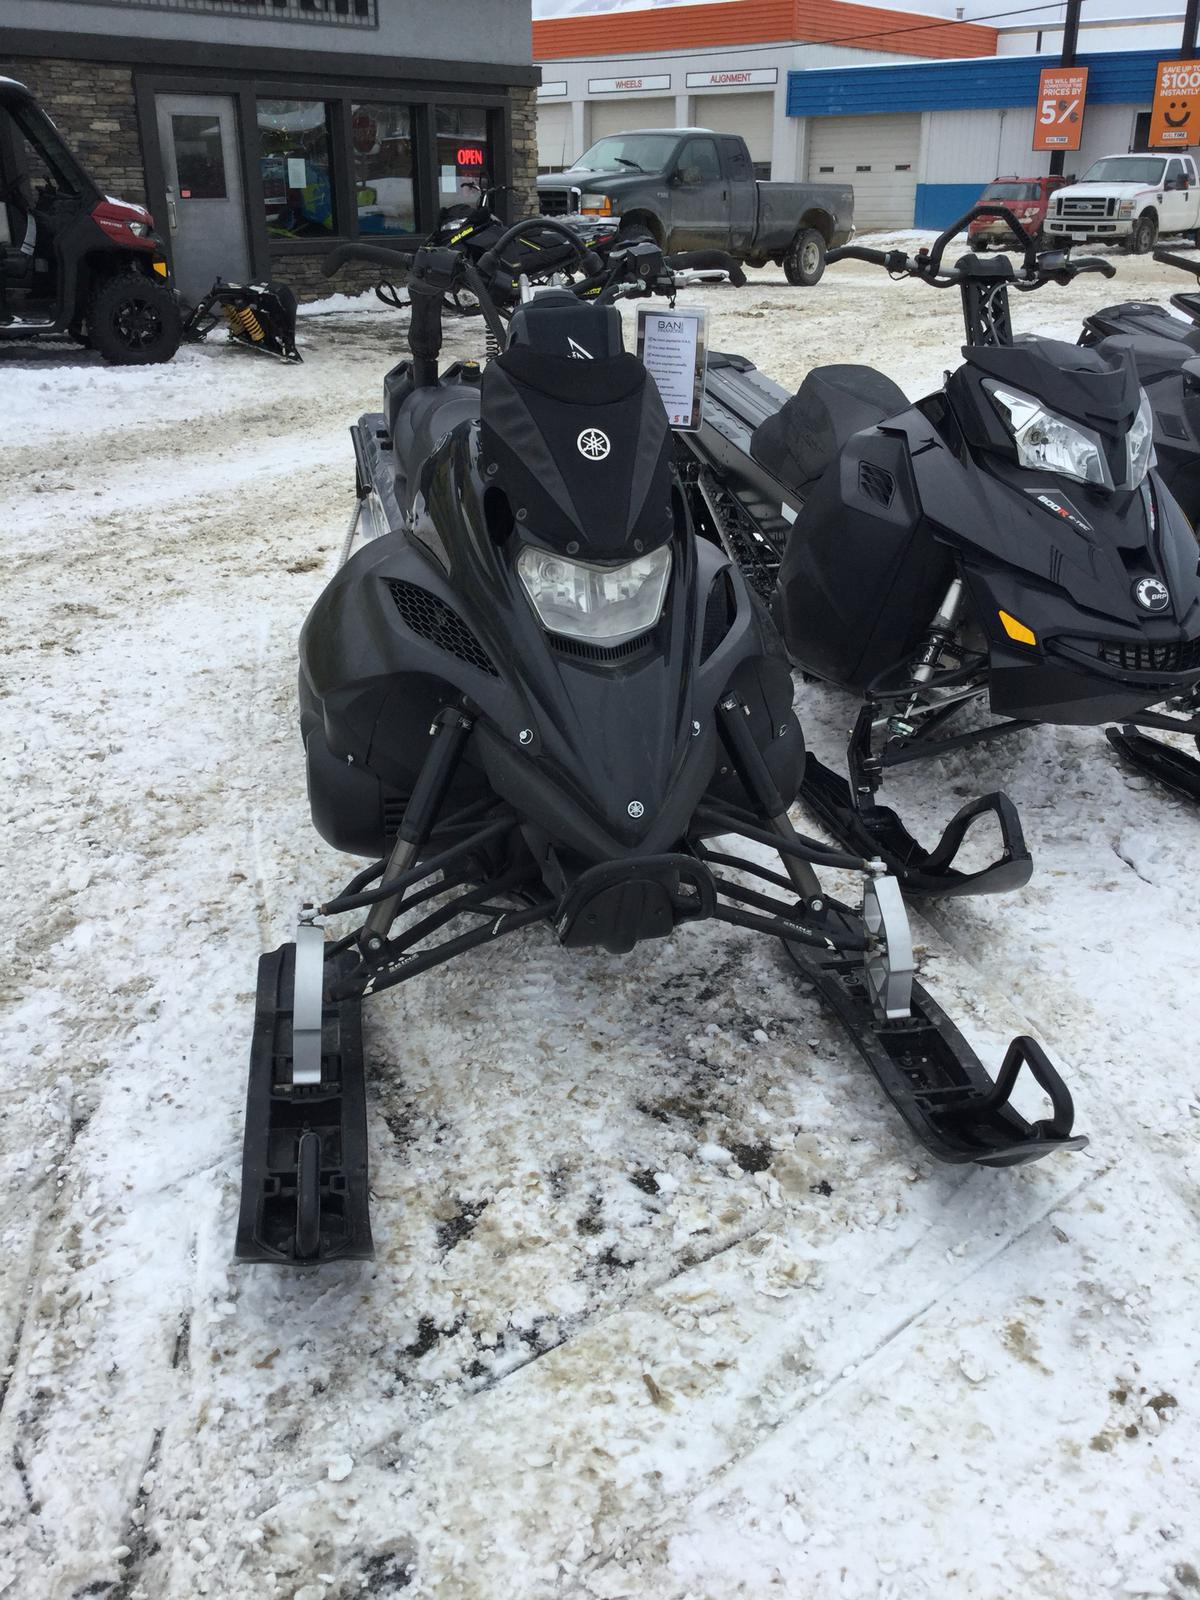 Inventory from Polaris Industries and Yamaha Banner